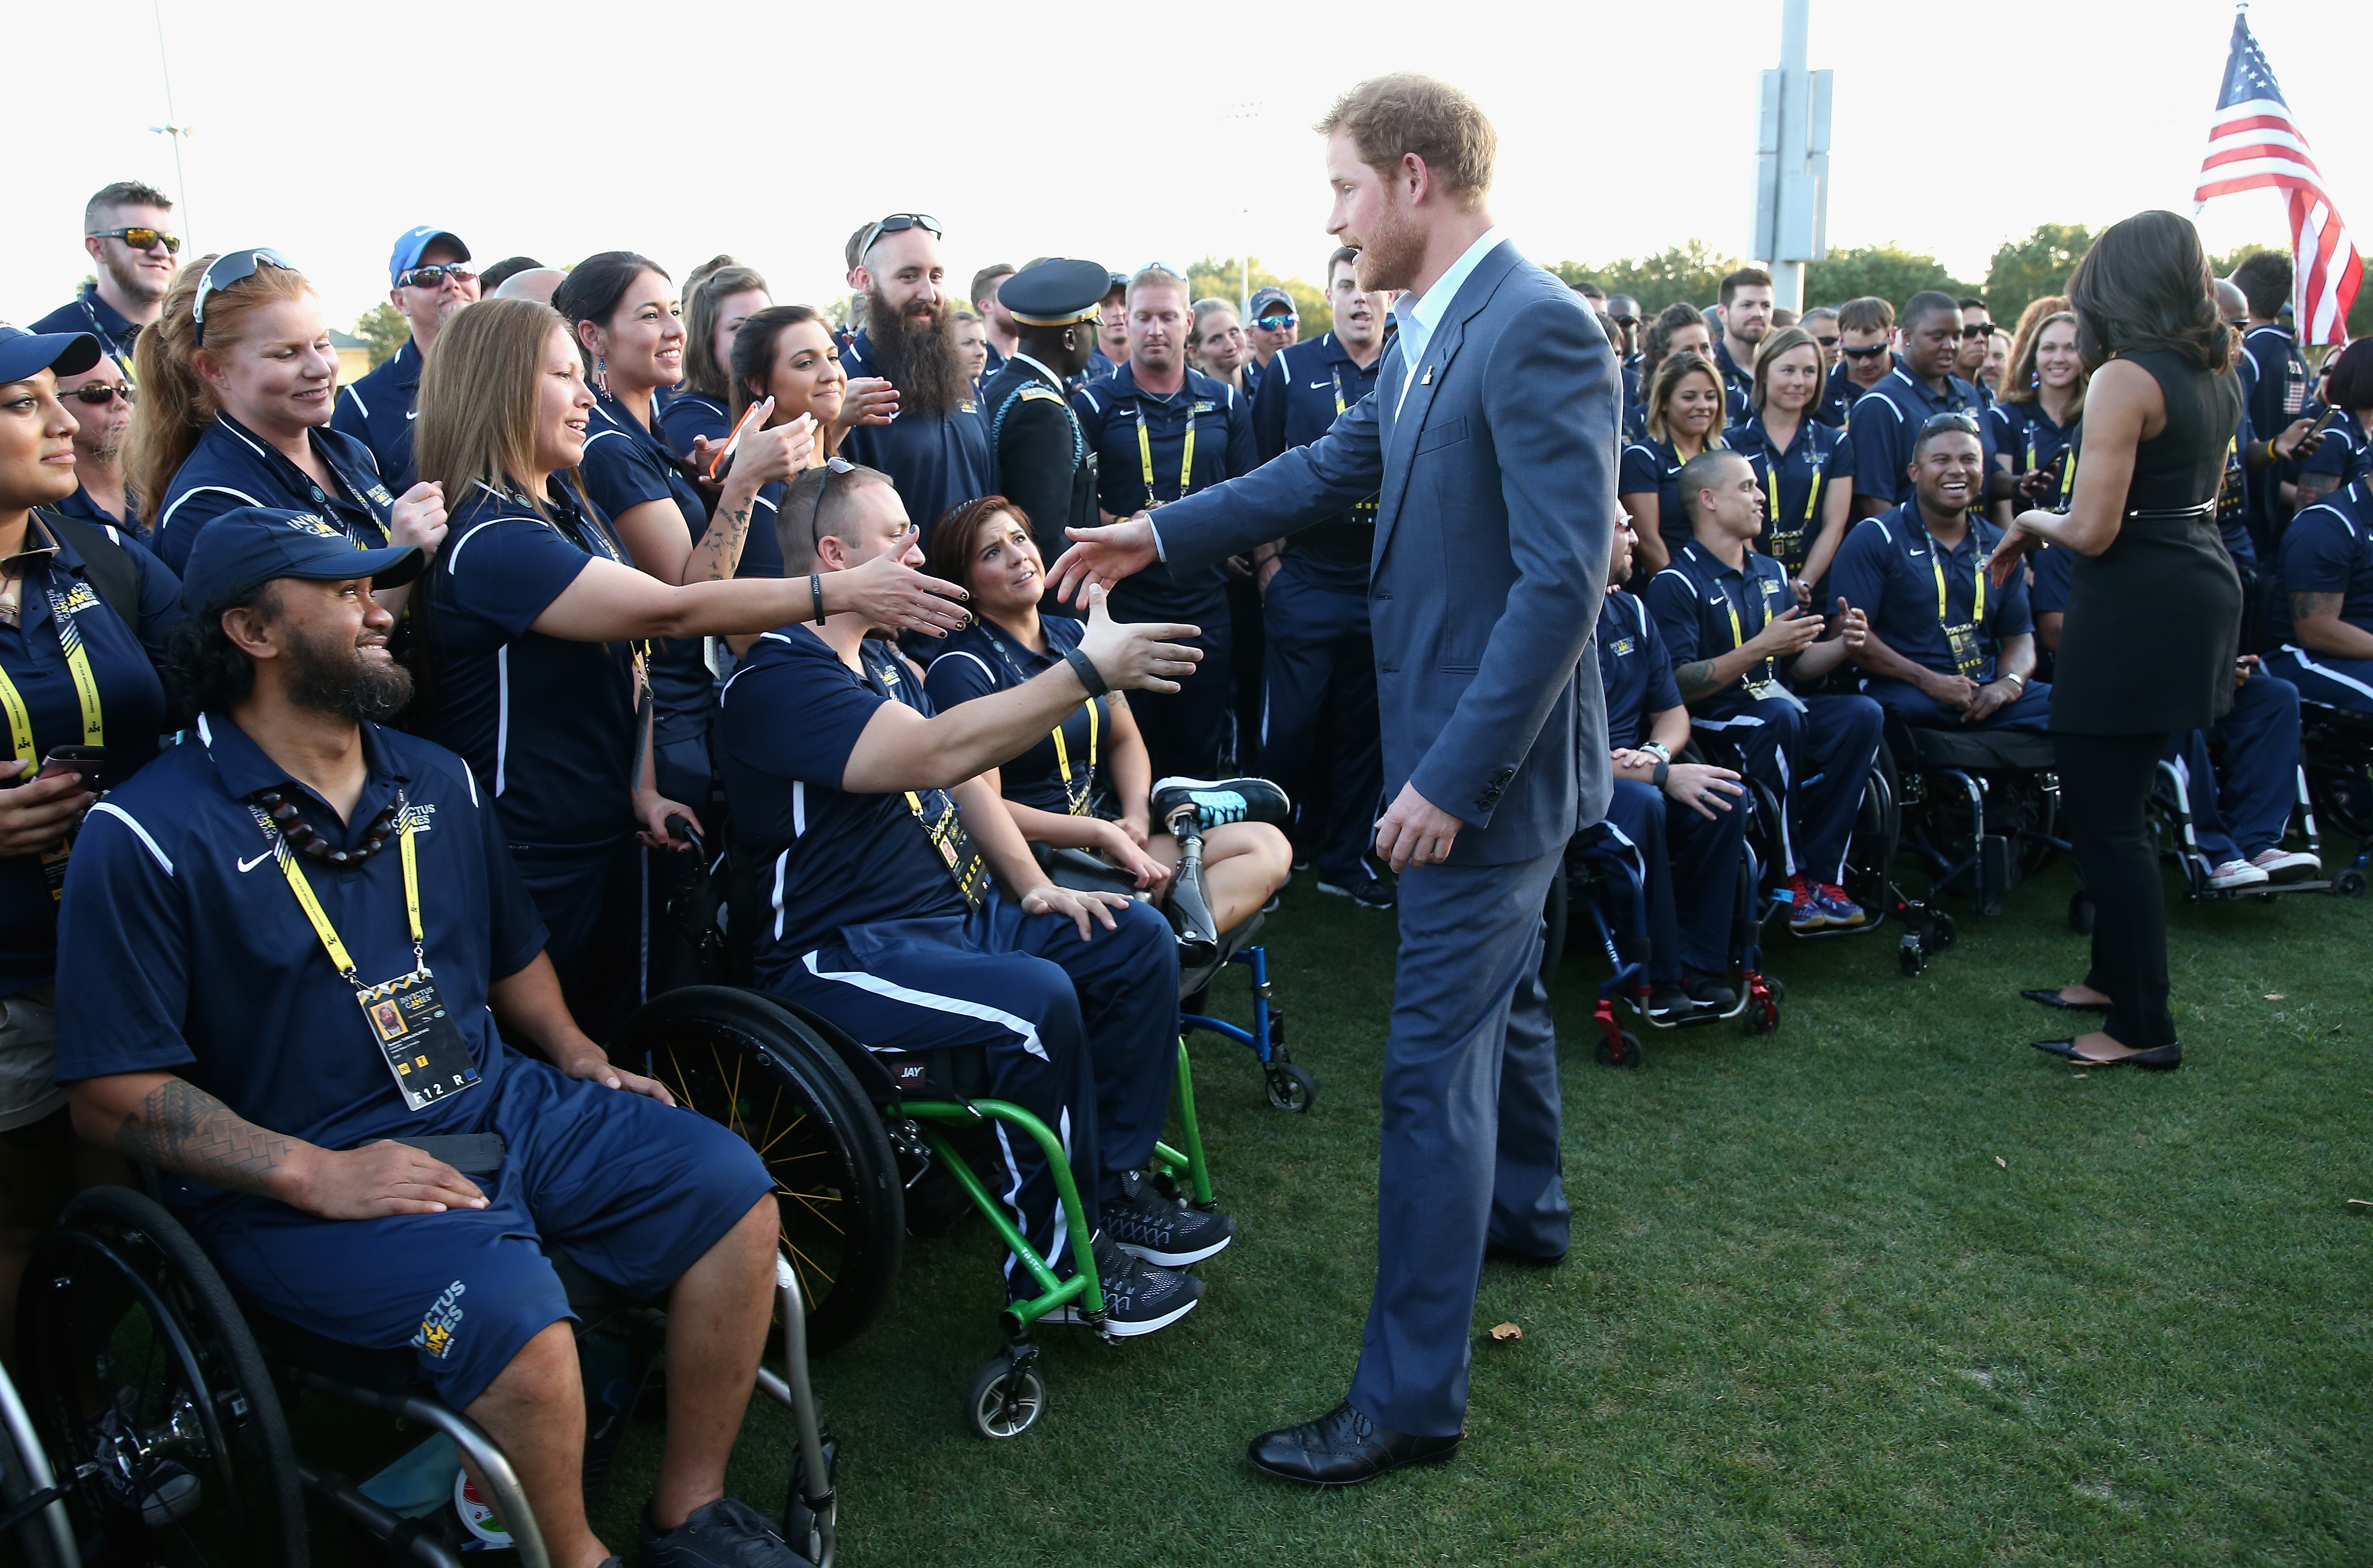 Prince Harry meets the USA Invictus Team ahead of the Opening Ceremony of the Invictus Games on May 8, 2016 in Orlando, Florida.